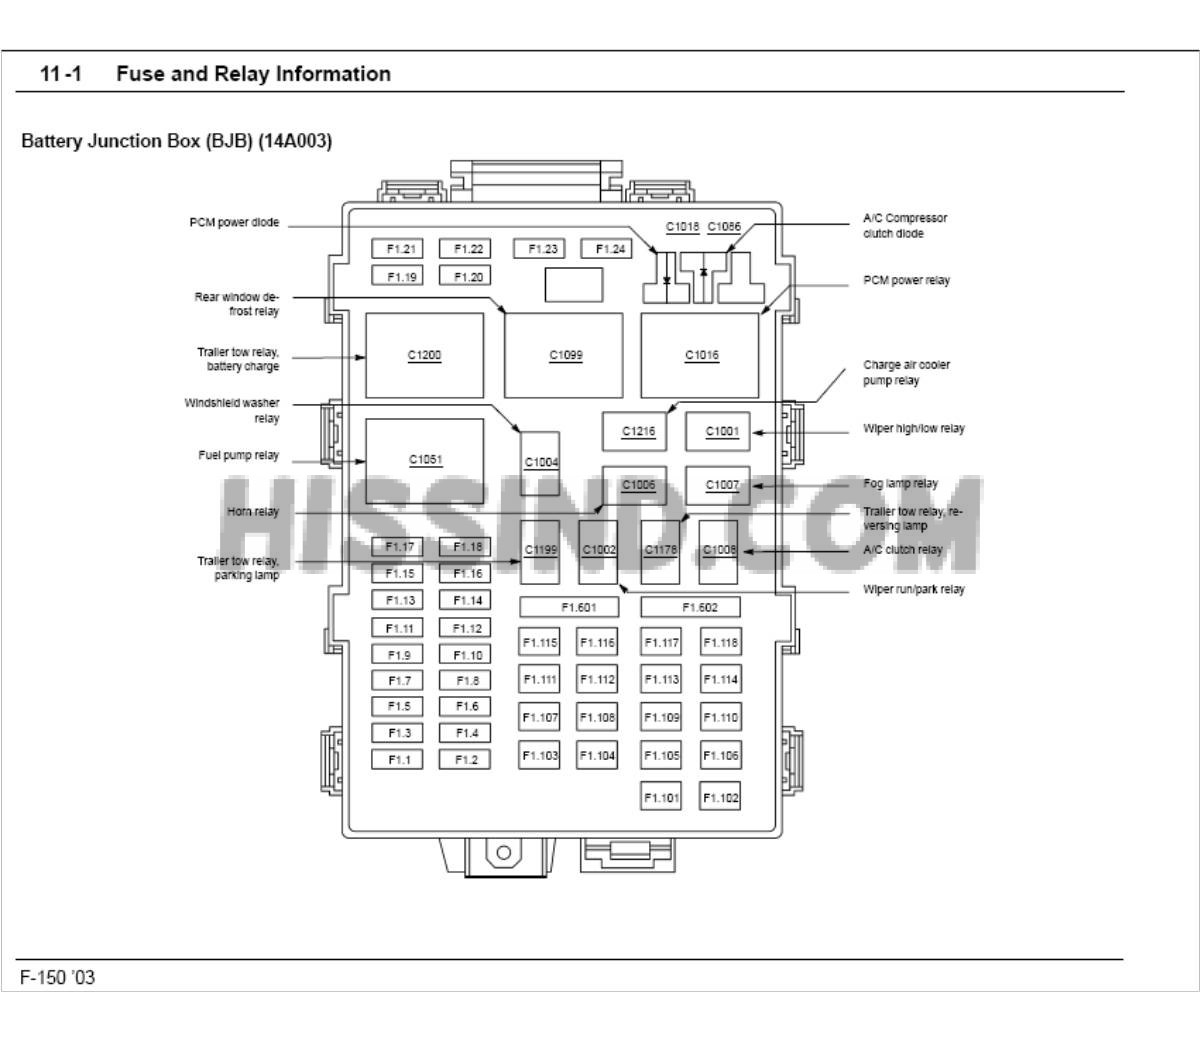 03 f150 fuse diagram enthusiast wiring diagrams 2003 f150 xl fuse box  diagram 2003 f150 fuse panel diagram